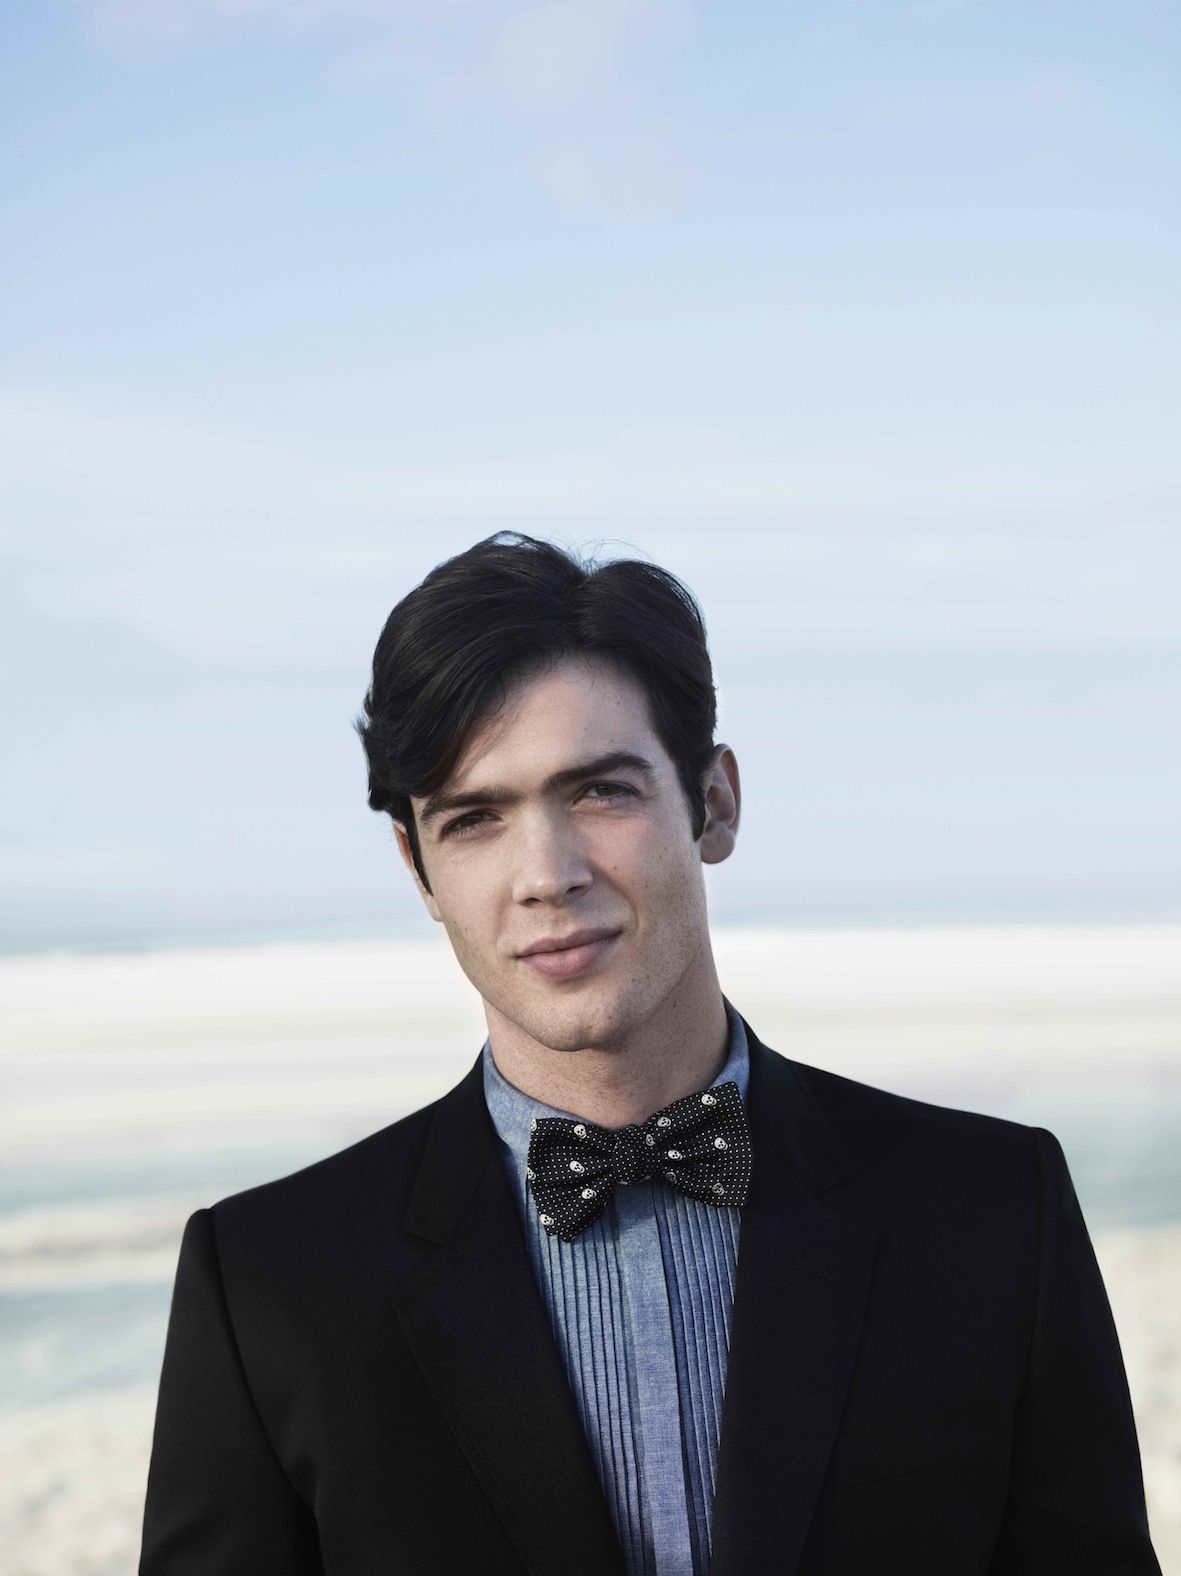 ethan peck passport to parisethan peck gif, ethan peck 2017, ethan peck filmography, ethan peck girlfriend 2017, ethan peck instagram, ethan peck 2016, ethan peck wiki, ethan peck on gossip girl, ethan peck 2015, ethan peck the selection, ethan peck 2014, ethan peck wikipedia, ethan peck facebook, ethan peck passport to paris, ethan peck wdw, ethan peck films, ethan peck imdb, ethan peck twitter, ethan peck shirtless, ethan peck and his girlfriend